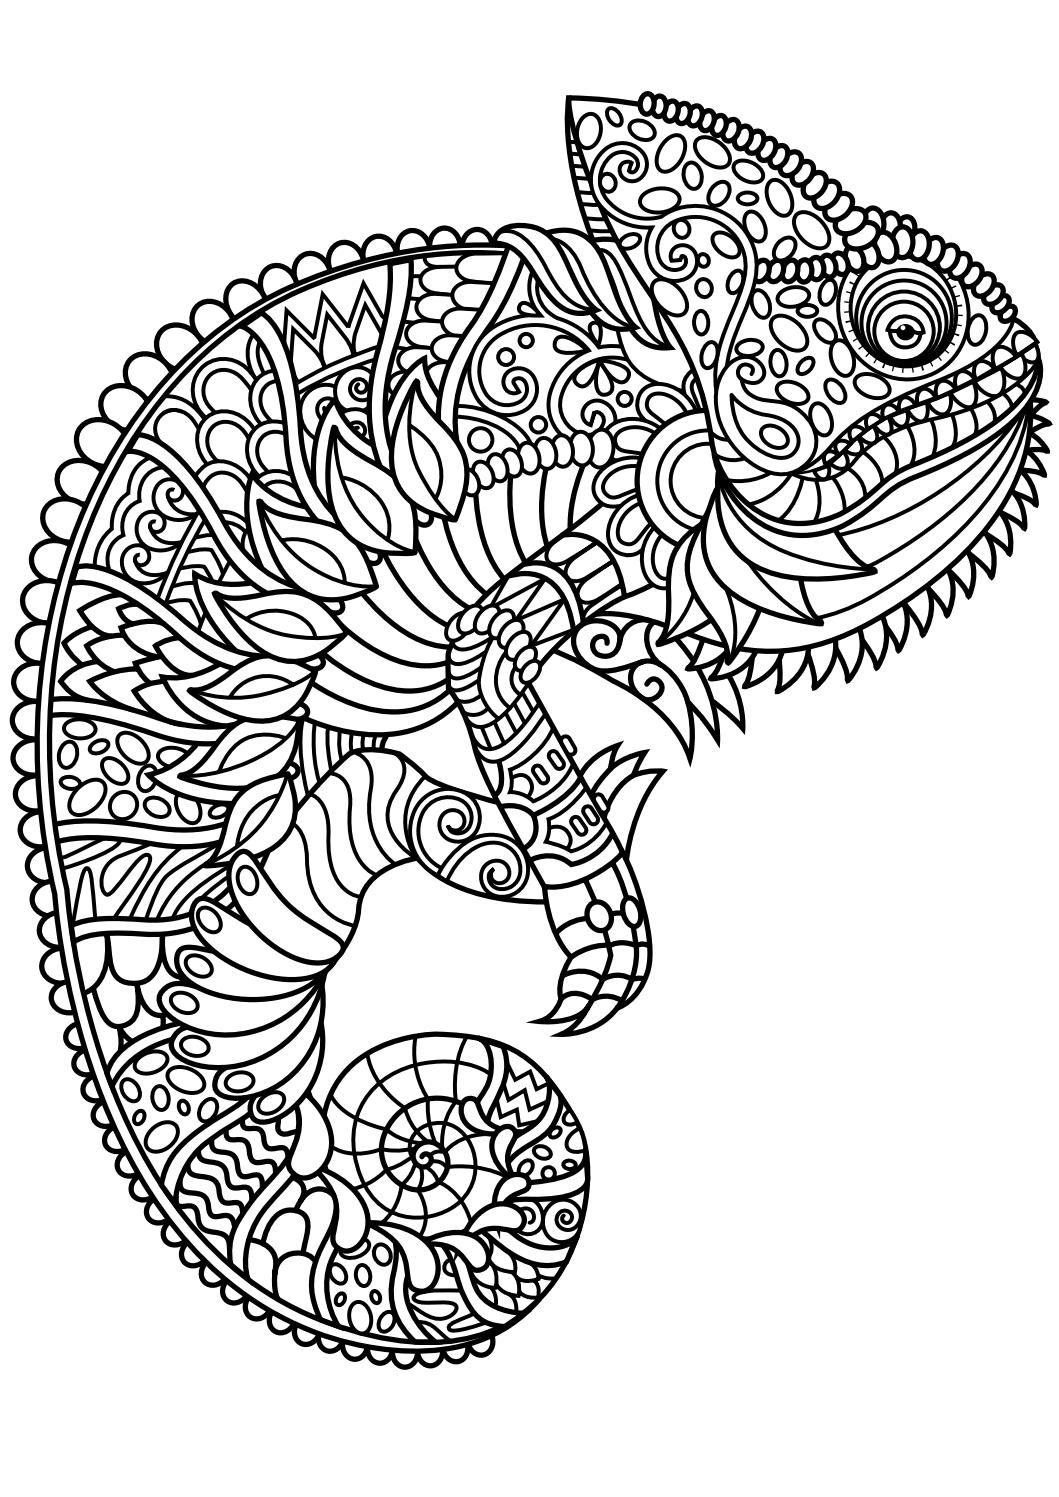 Animal Coloring Pages Pdf Animal Coloring Pages Pdf  Adult Coloring Dog Cat And Coloring Books